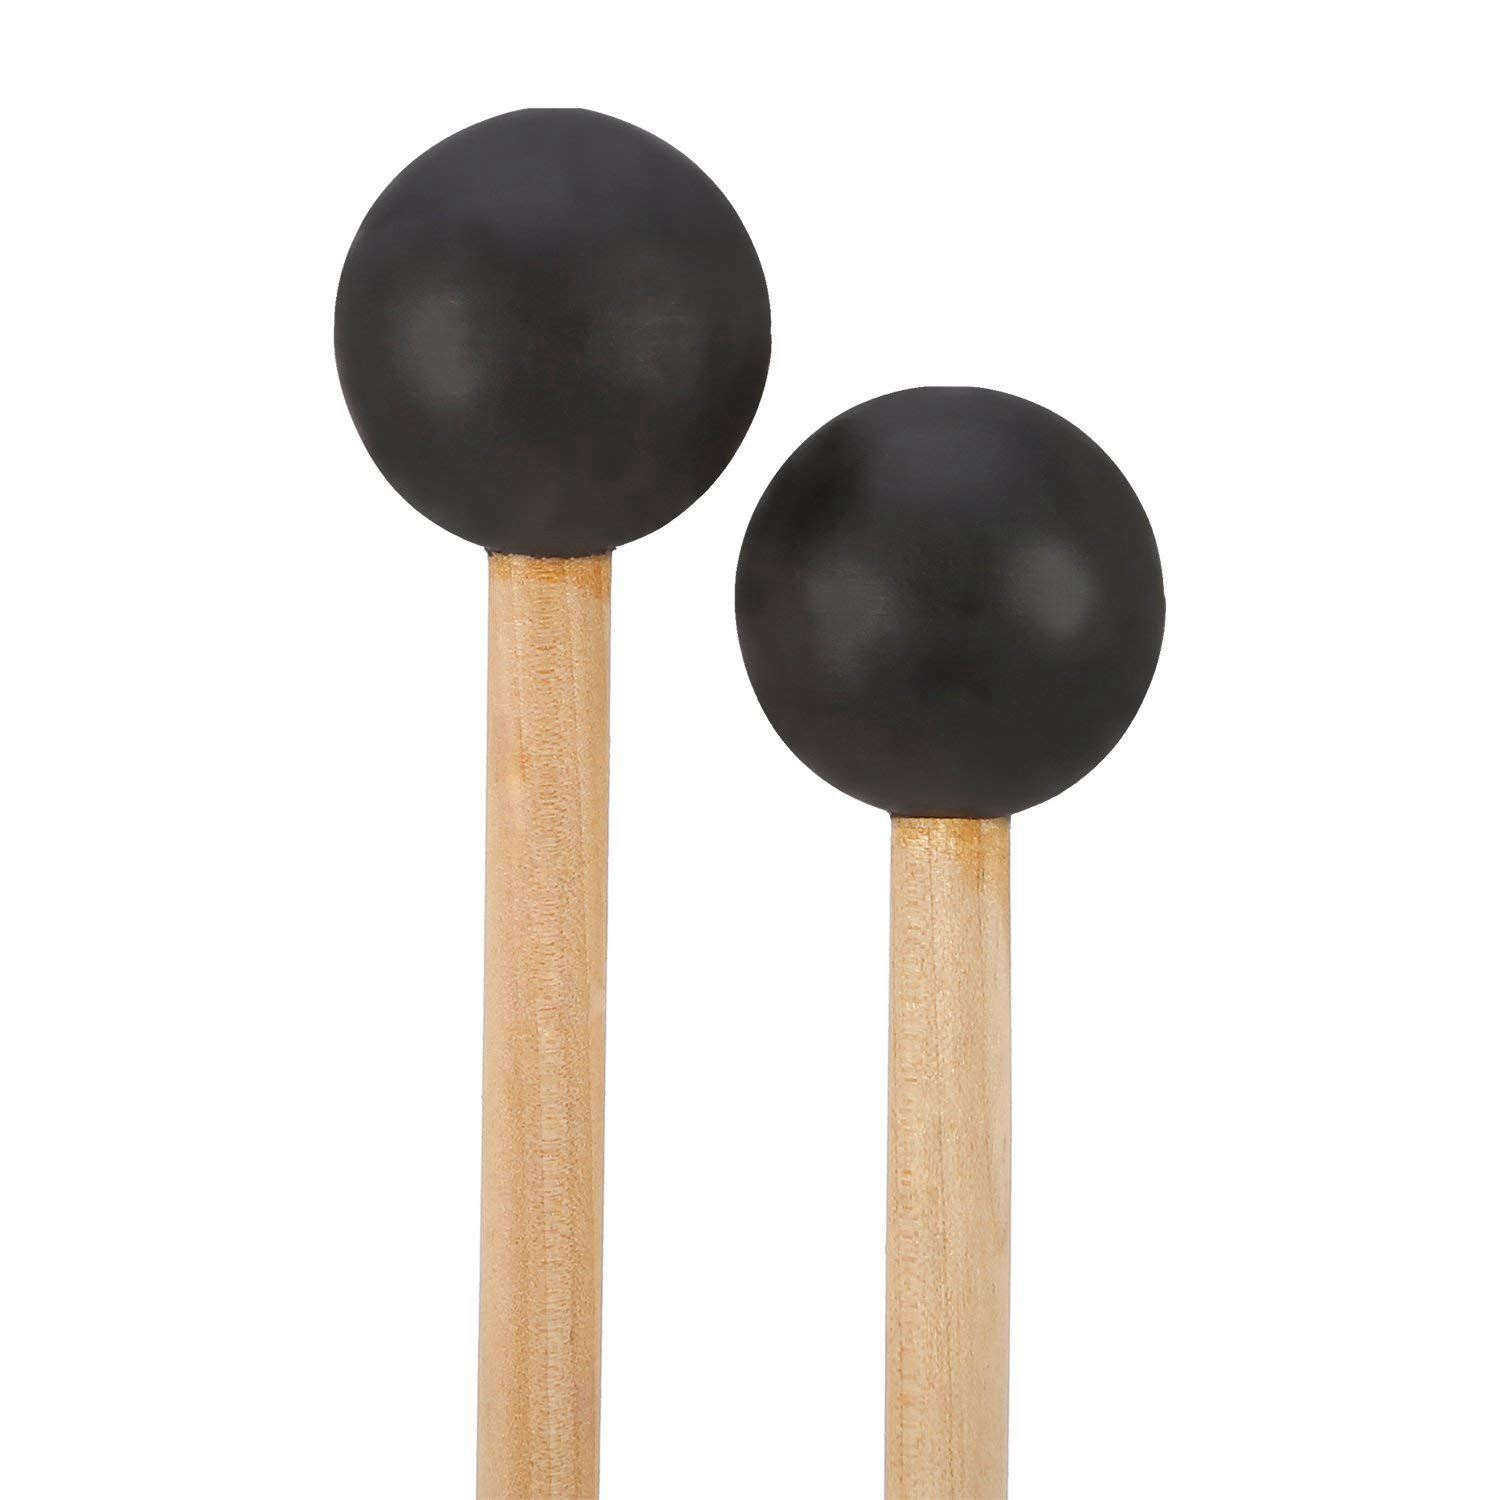 HOT-Bell Mallets Glockenspiel Sticks, Rubber Mallet Percussion With Wood Handle, 15 Inch Long (Black)